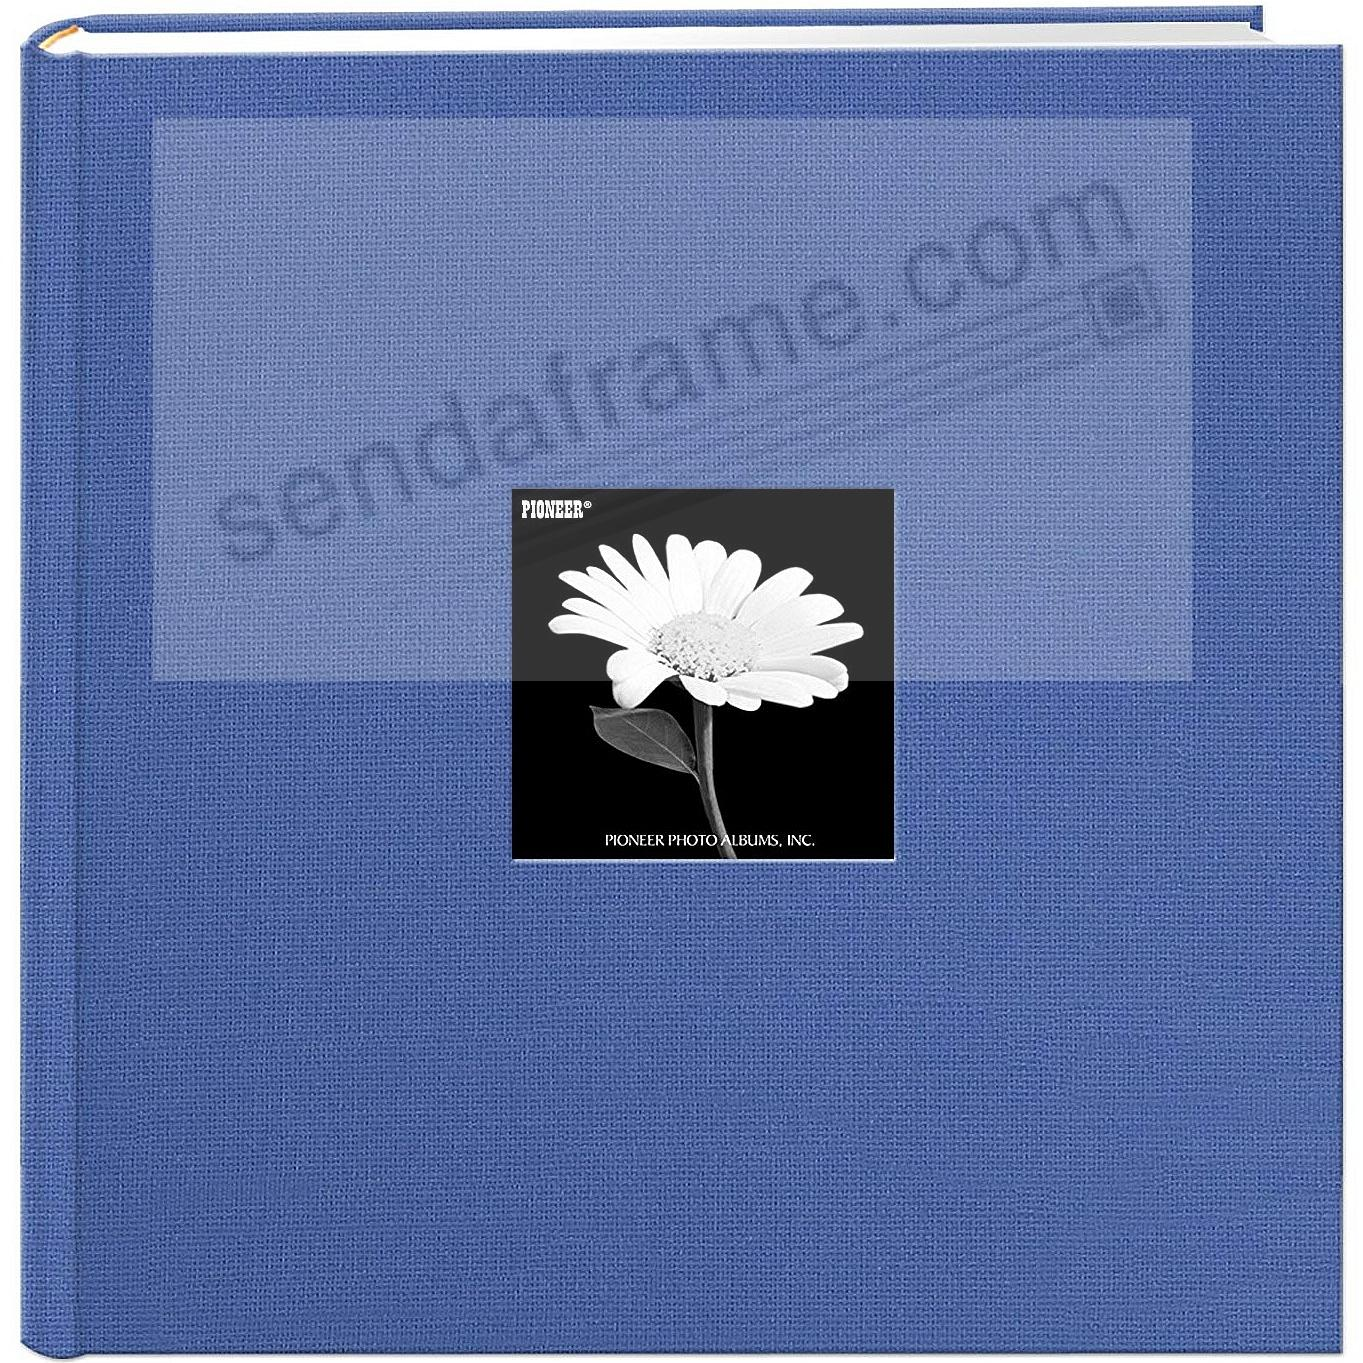 Sky-Blue Cloth Frame Cover Album shows 10-at-a-time 500 pocket by Pioneer